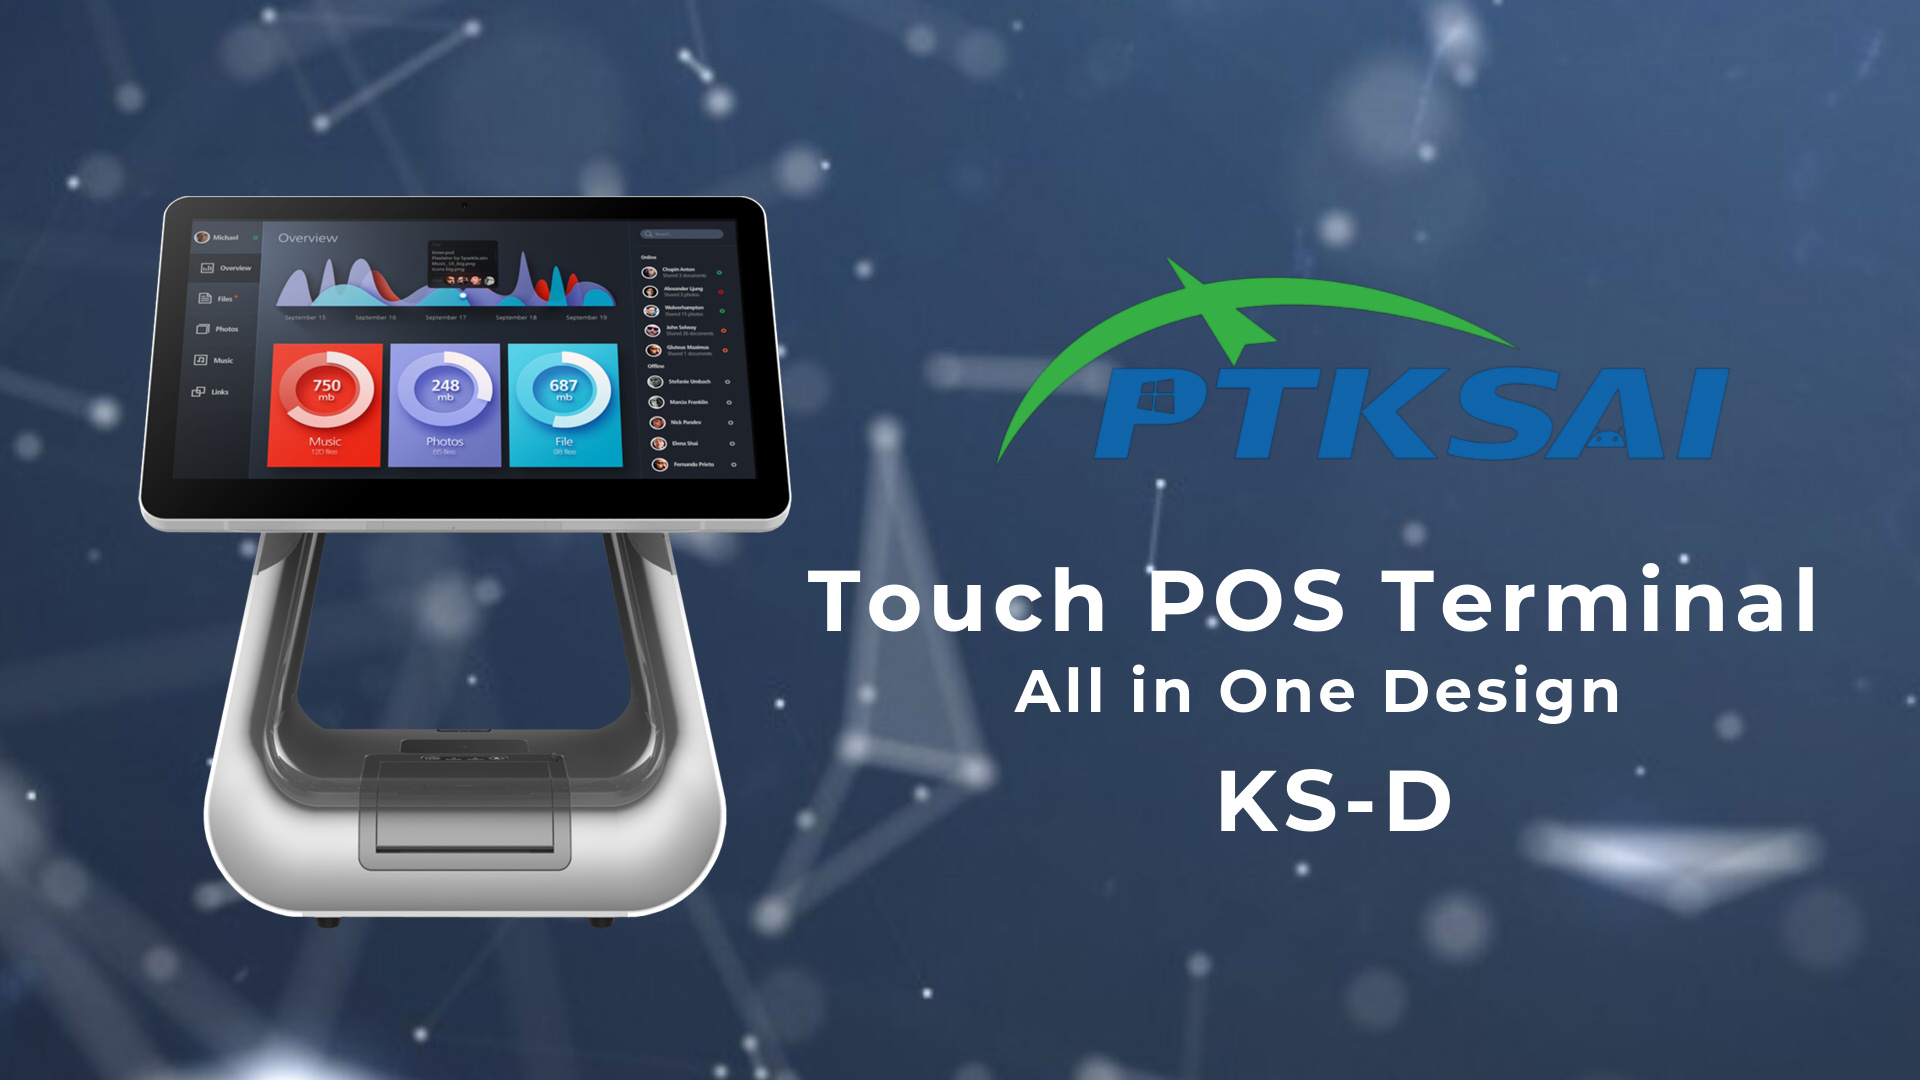 Ks-d All In One Touchscreen Pos Terminal Operation Vedio-pos terminal, self-service kiosk,all in one pos-PTKSAI